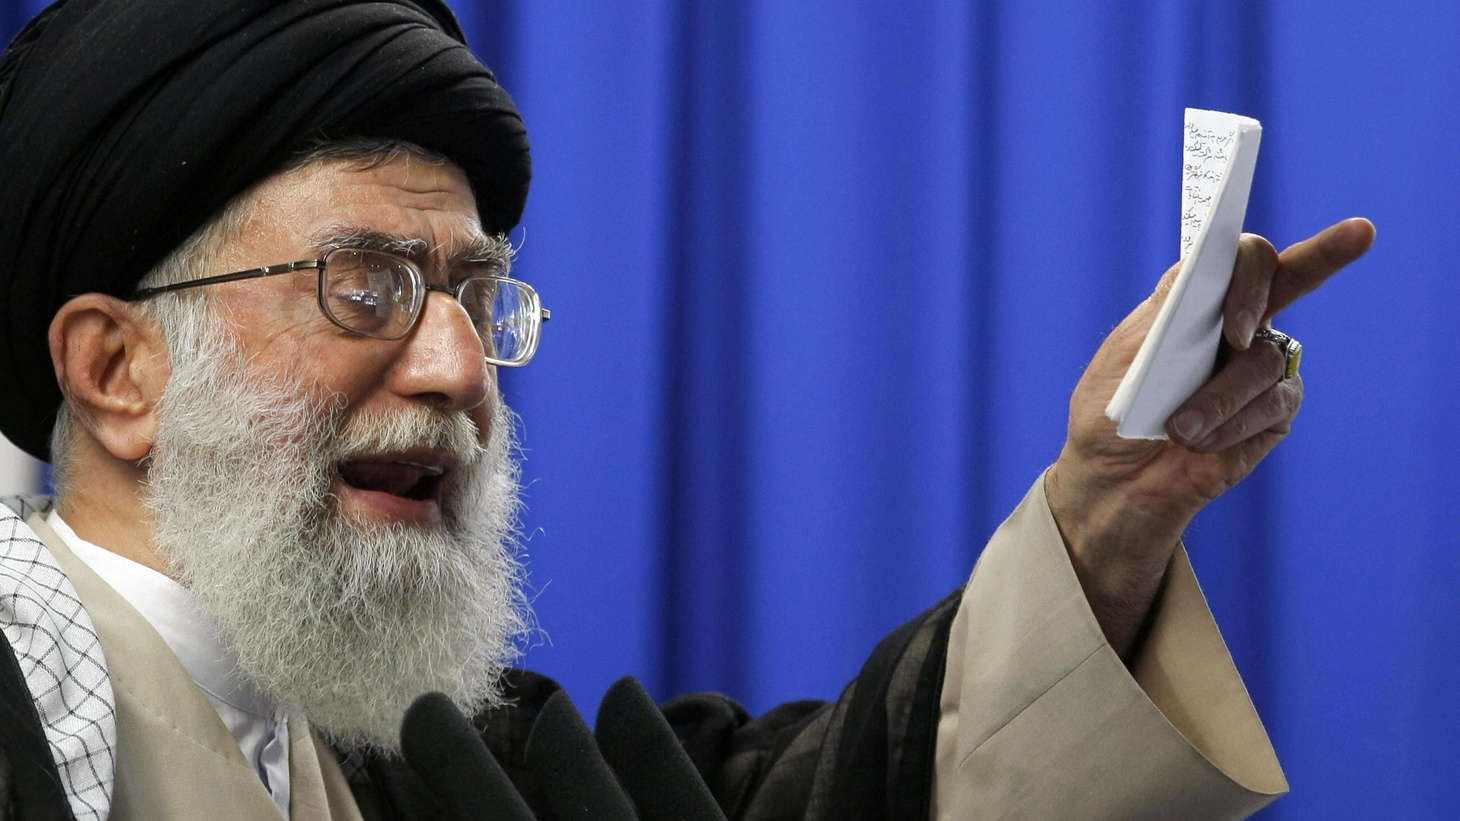 Iran's Supreme Leader has dashed any hope of changing the official results of last week's disputed election. We look at the likely consequences from Tehran to Washington, including the possibility of violent confrontations if protests continue. On Reporter's Notebook, we get the reaction of Iranian expatriates and organizers here in the United States.